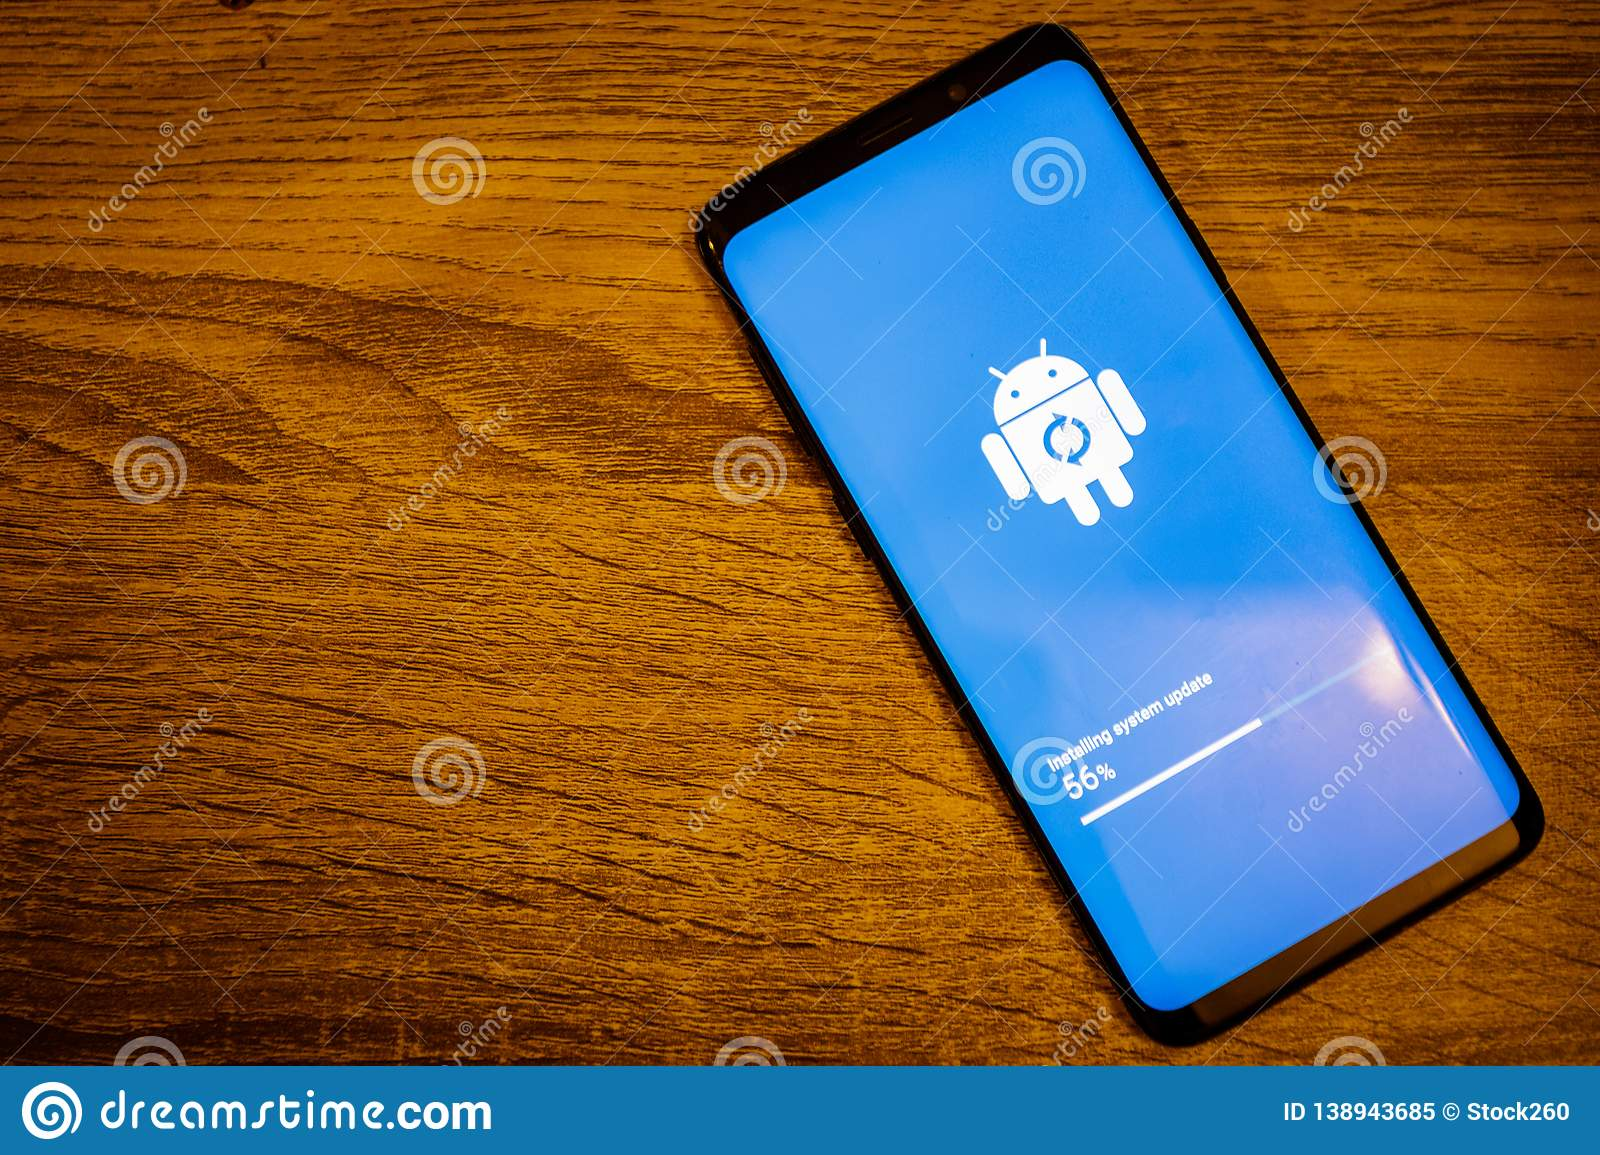 Android Installing System Update Editorial Image - Image of